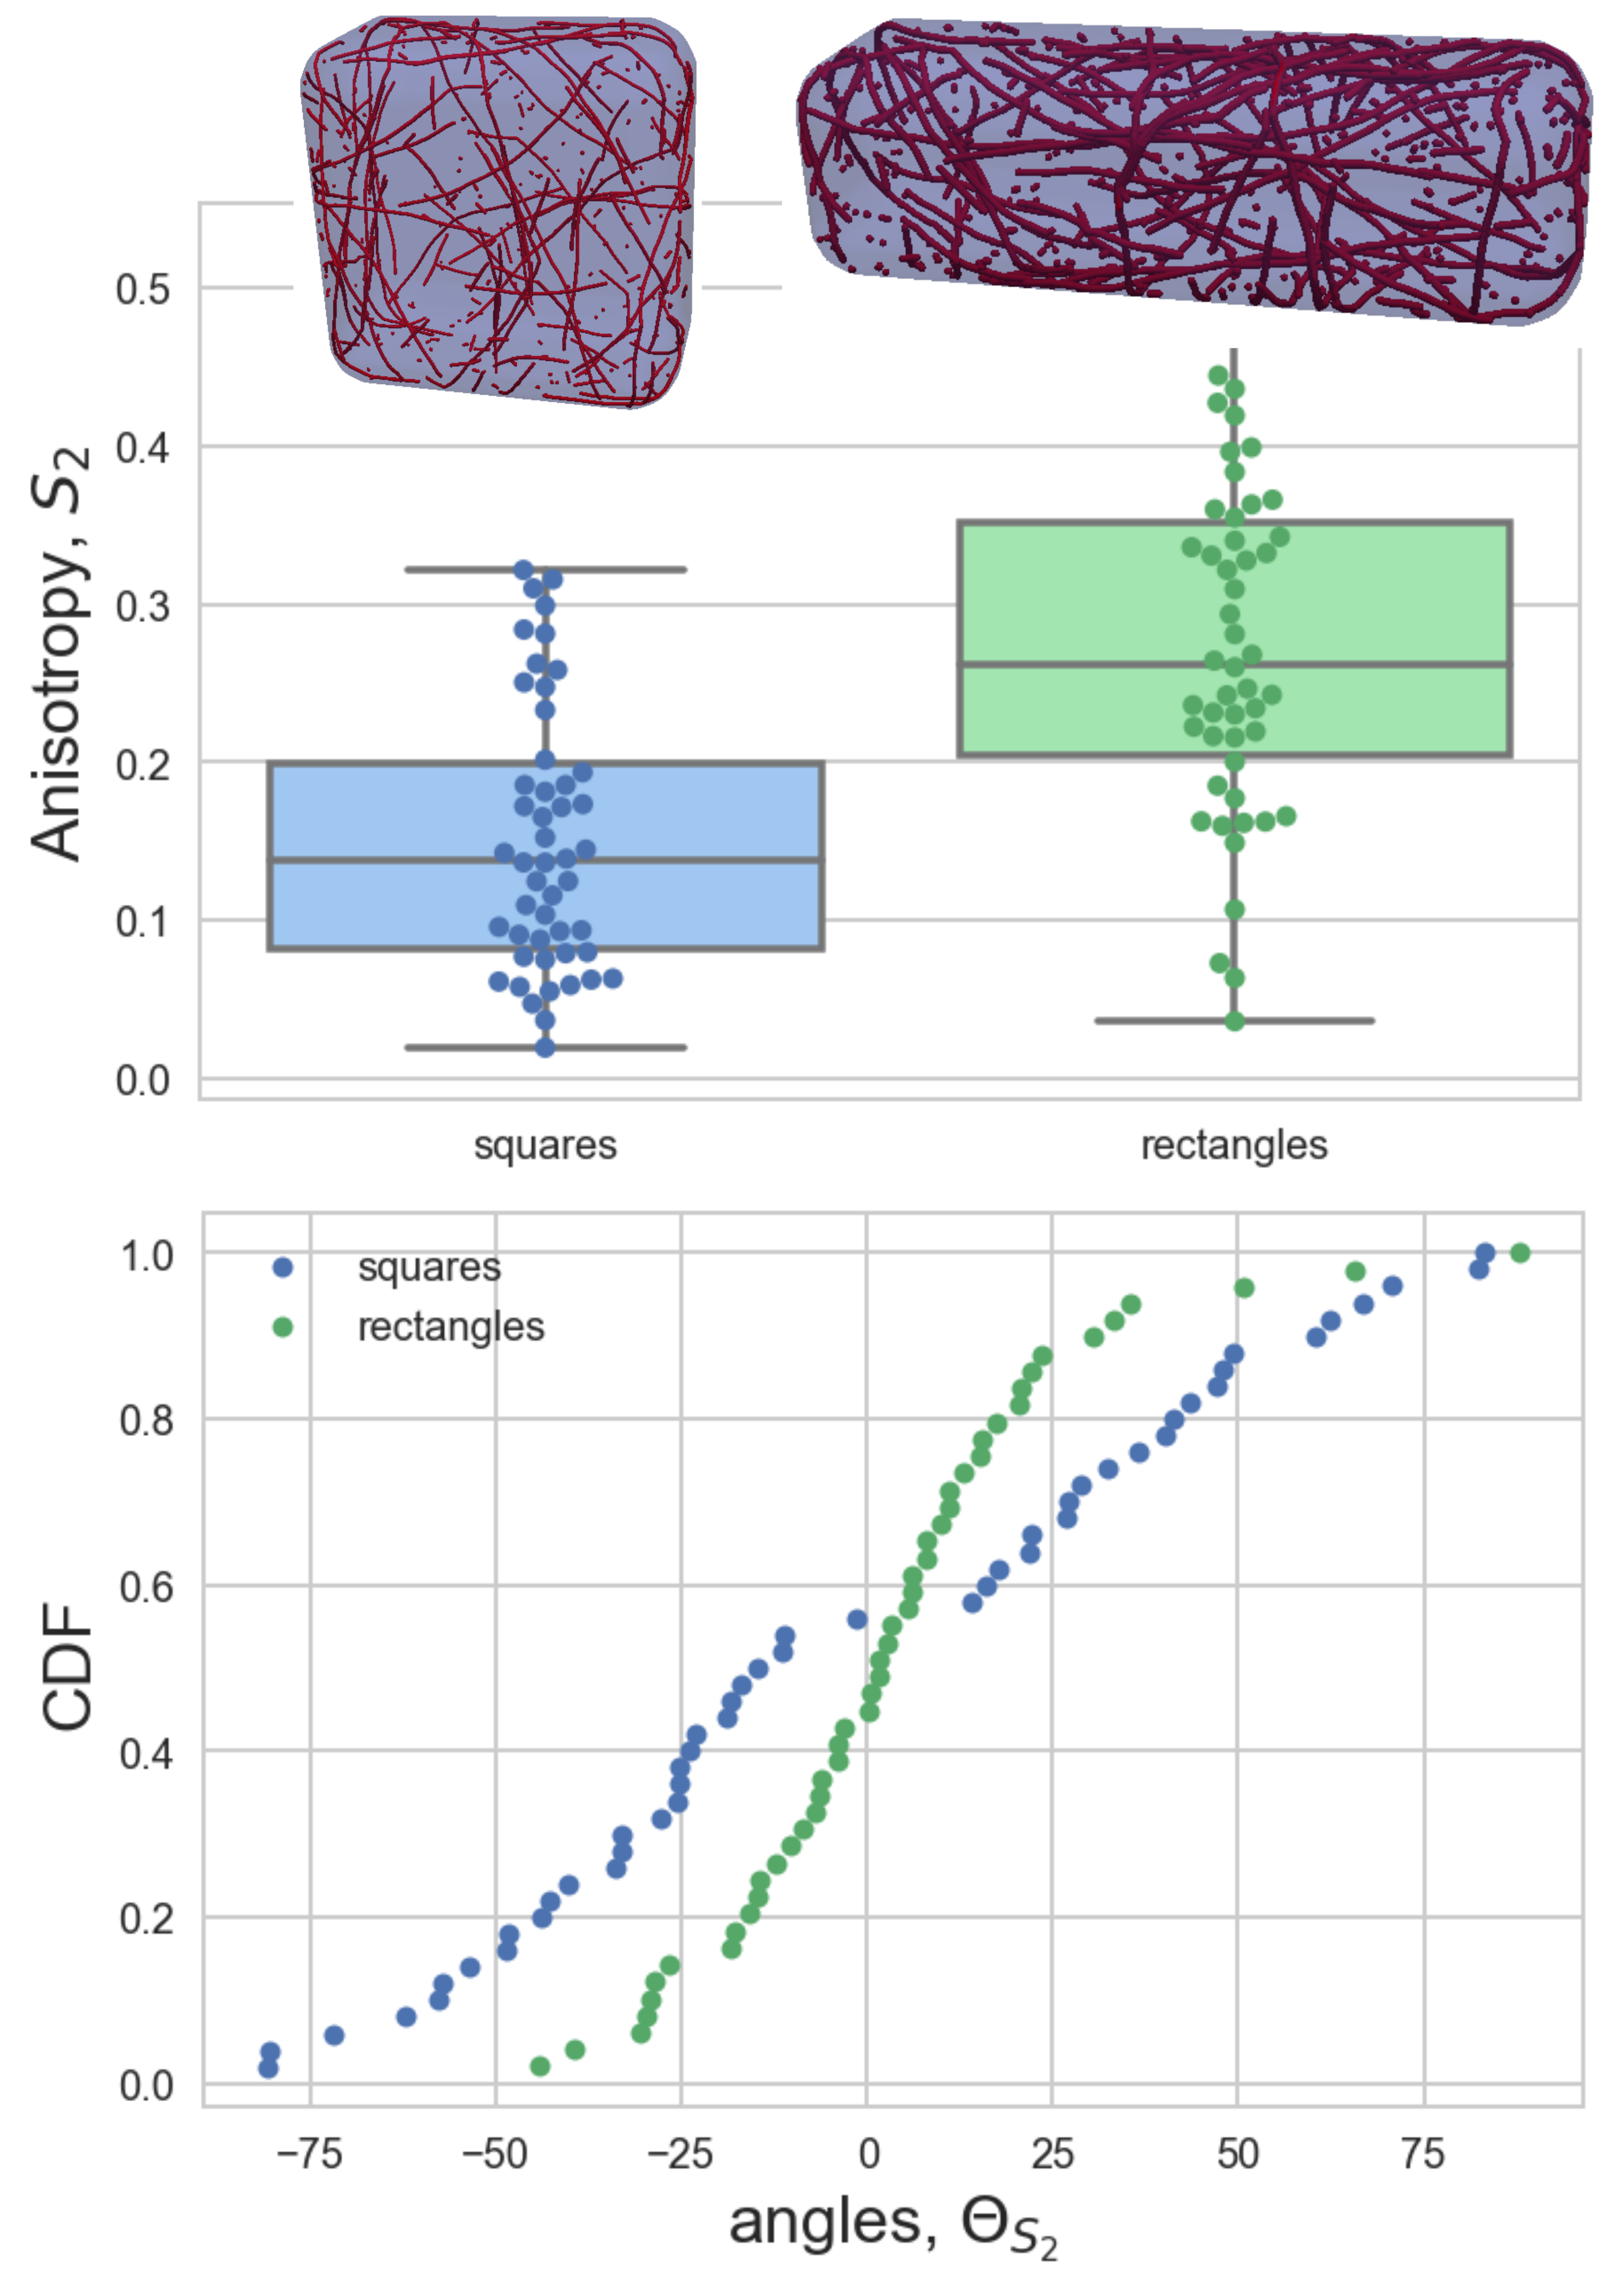 3D model simulations for microtubules in a rectangle and square cell geometry (Tamsin Spelman)